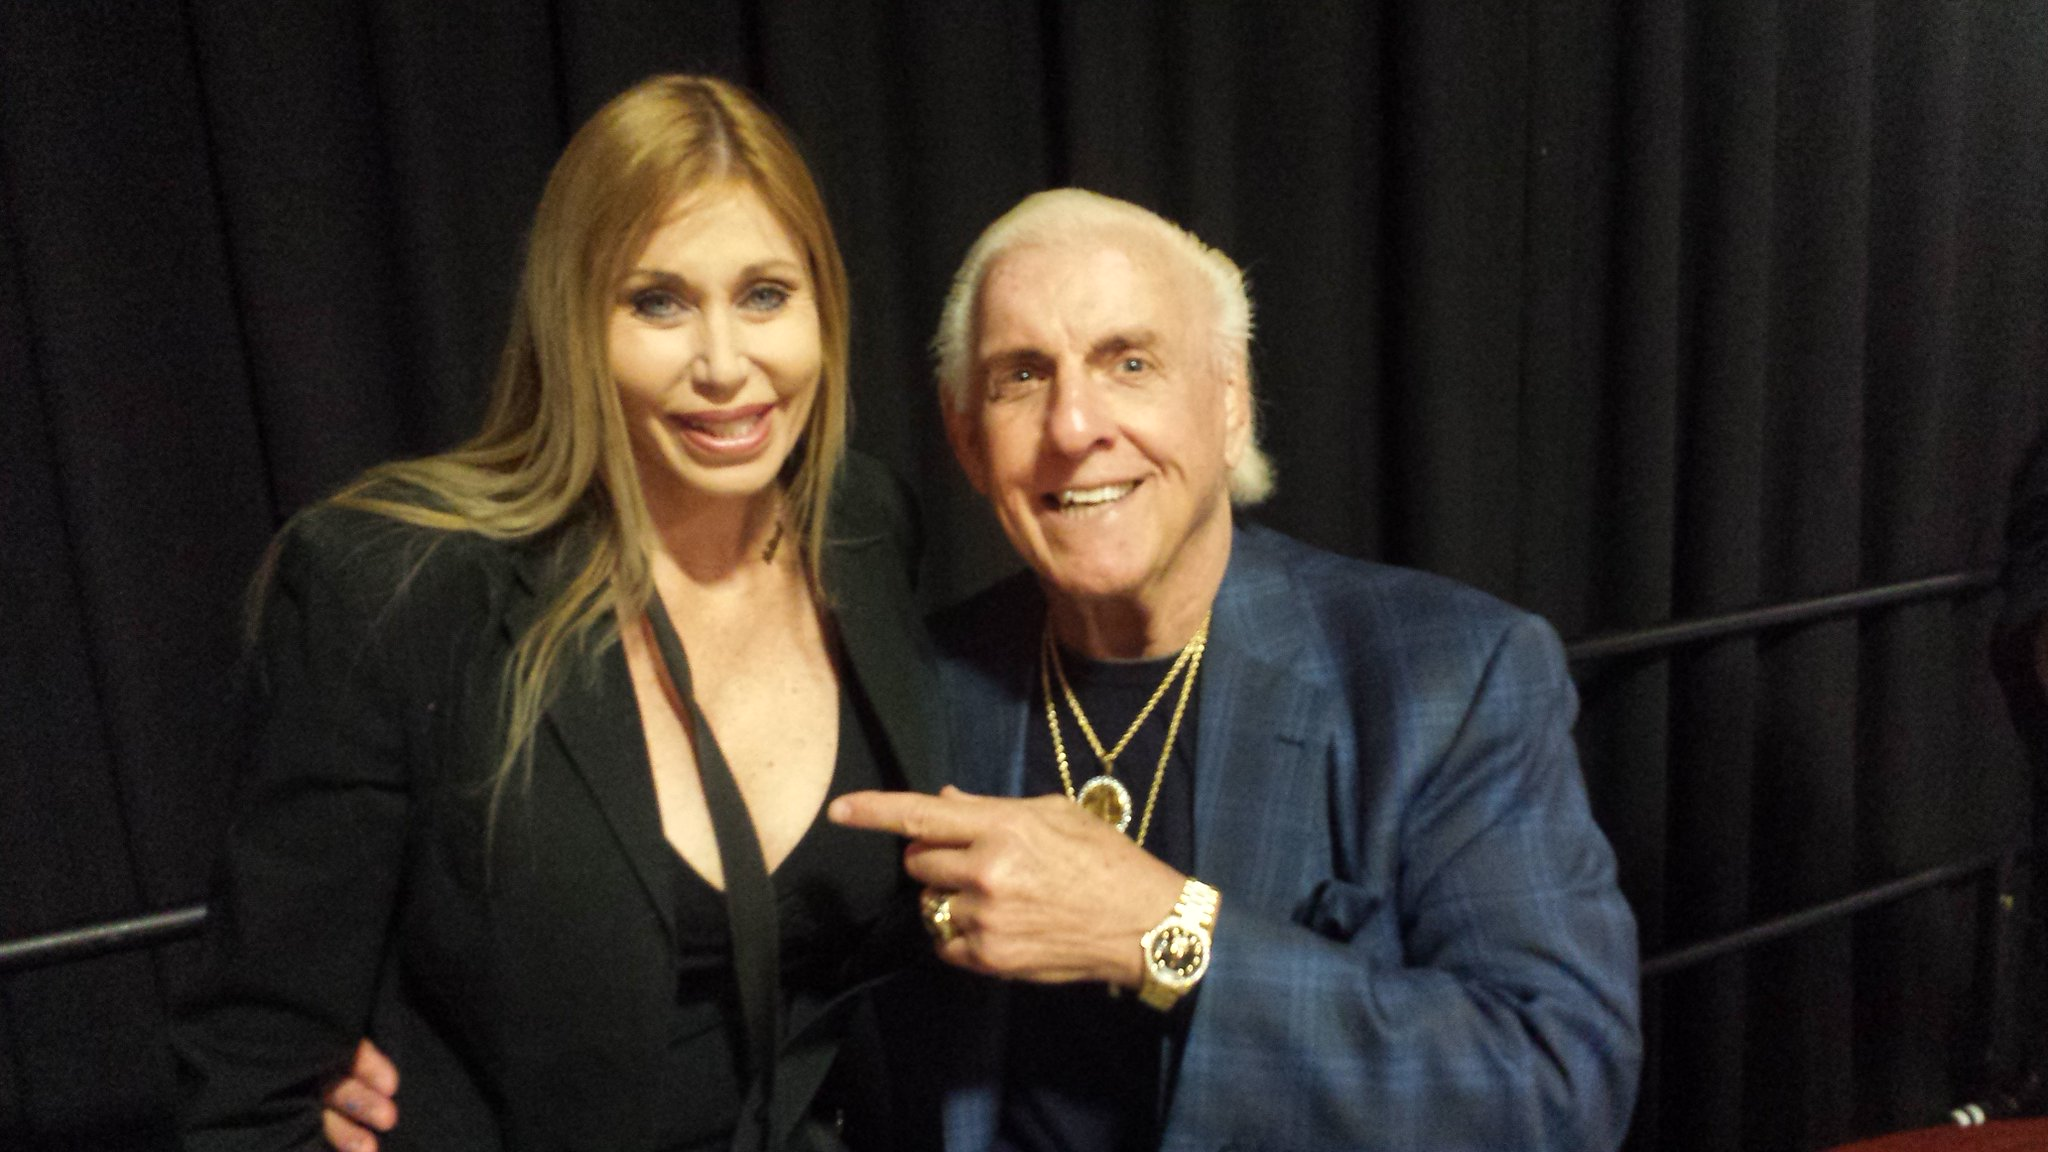 Missy Hyatt On Twitter Quot Met Ricflairnatrboy And His